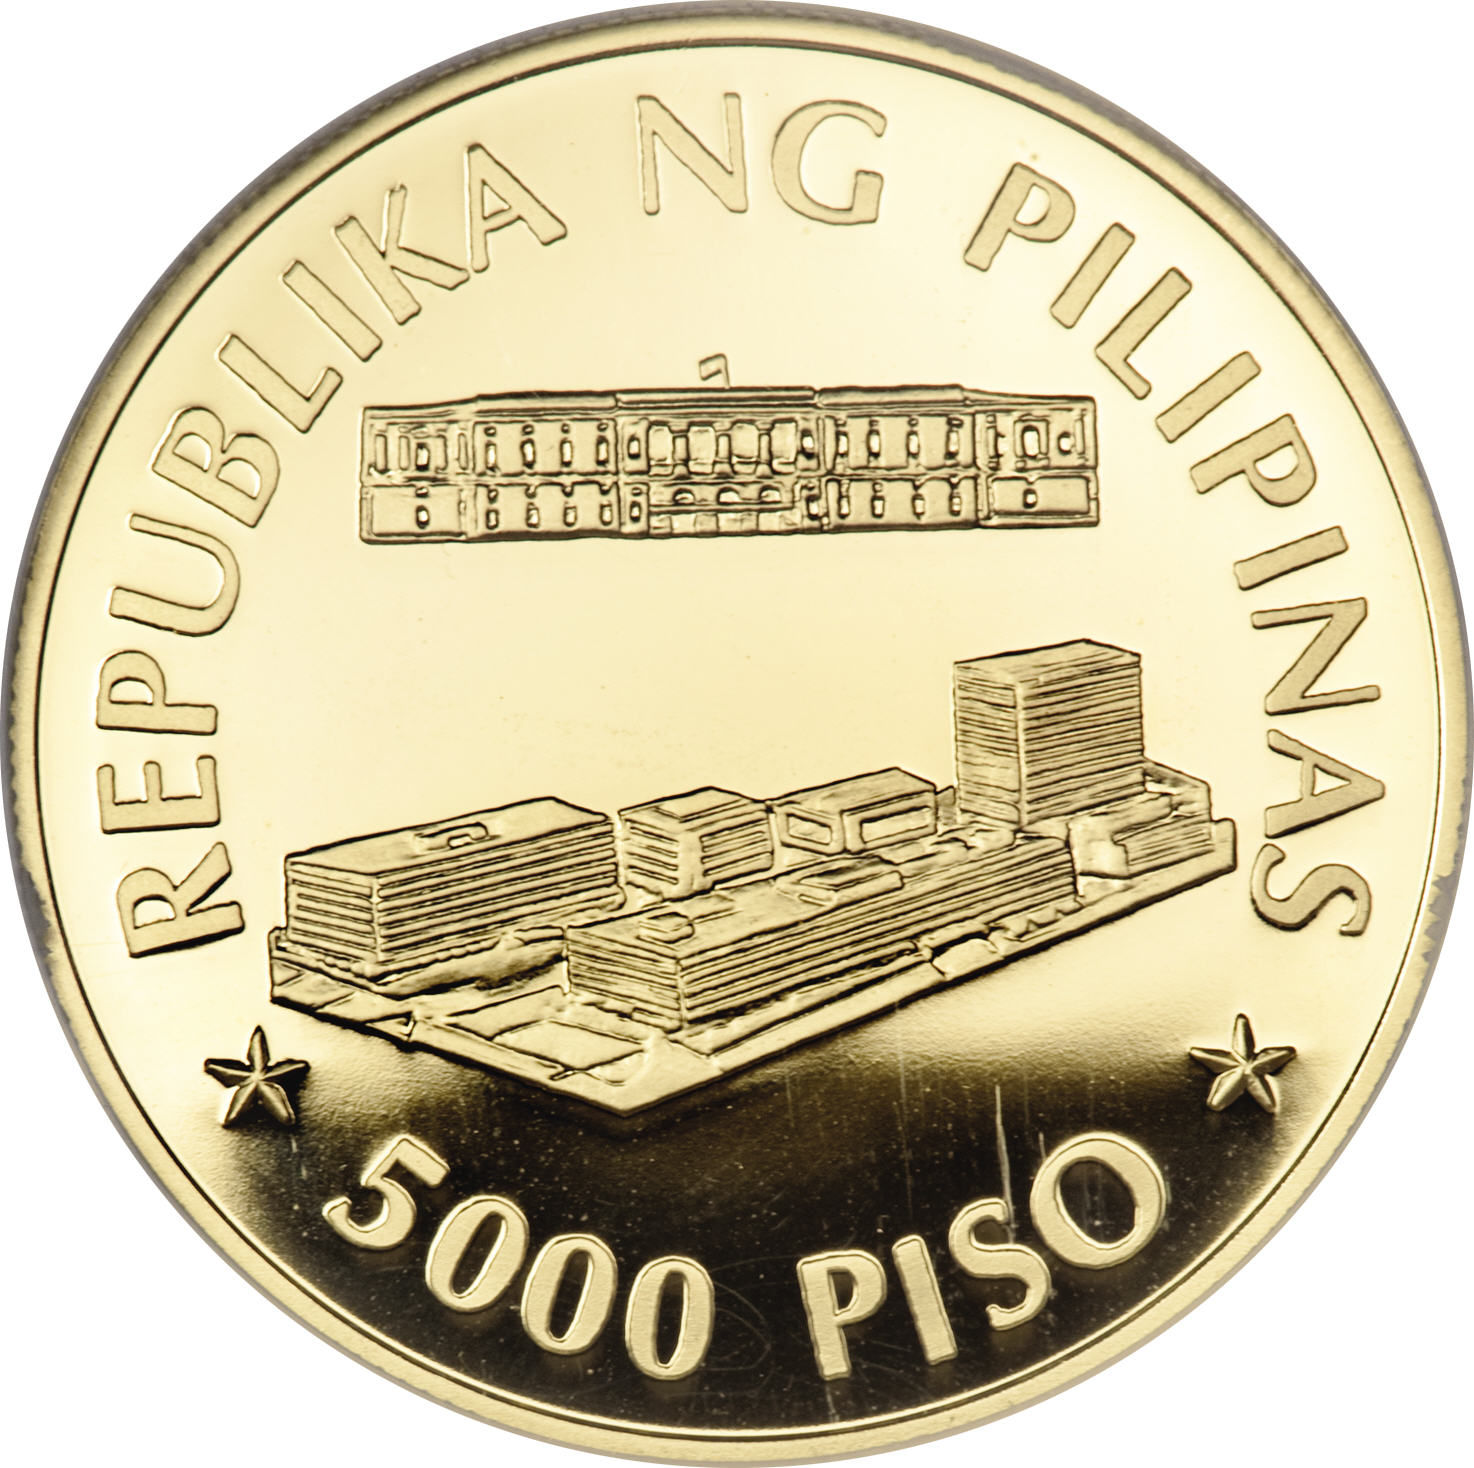 Central Bank Of The Philippines: 5000 Piso (Central Bank Of The Philippines)